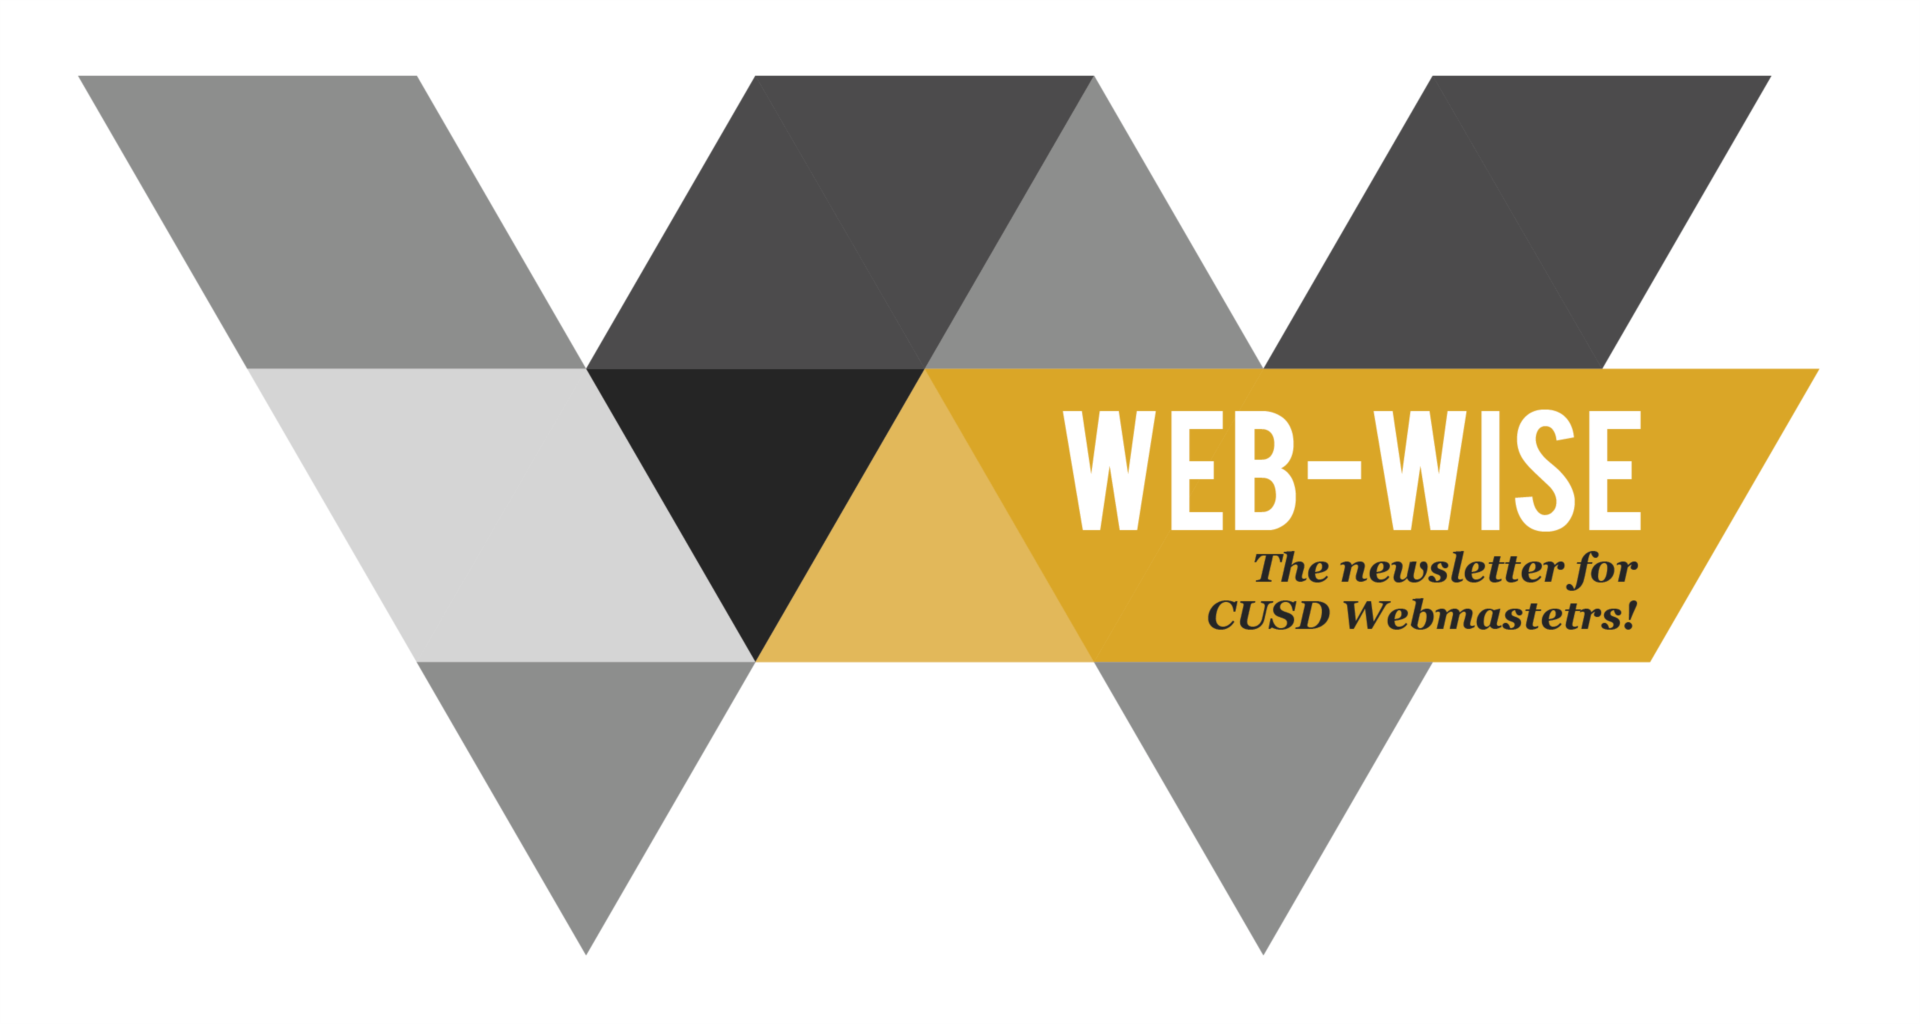 web wise logo